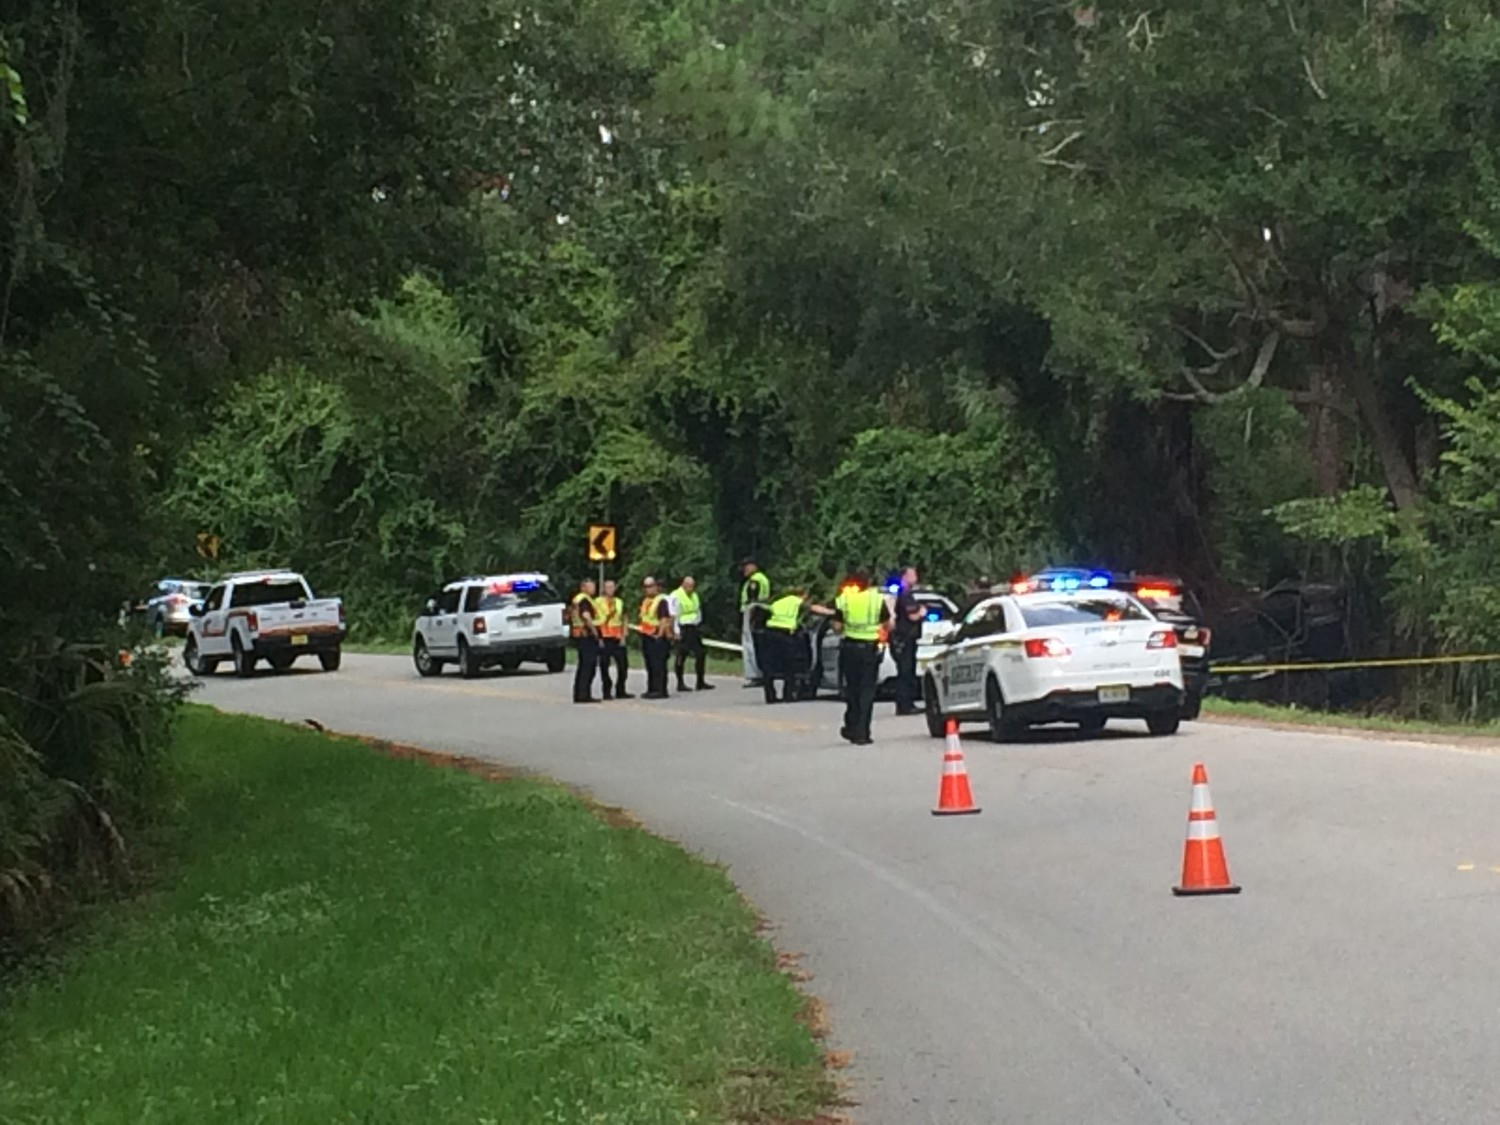 Authorities respond to a fatal car crash Monday morning on Solana Road in Ponte Vedra Beach.